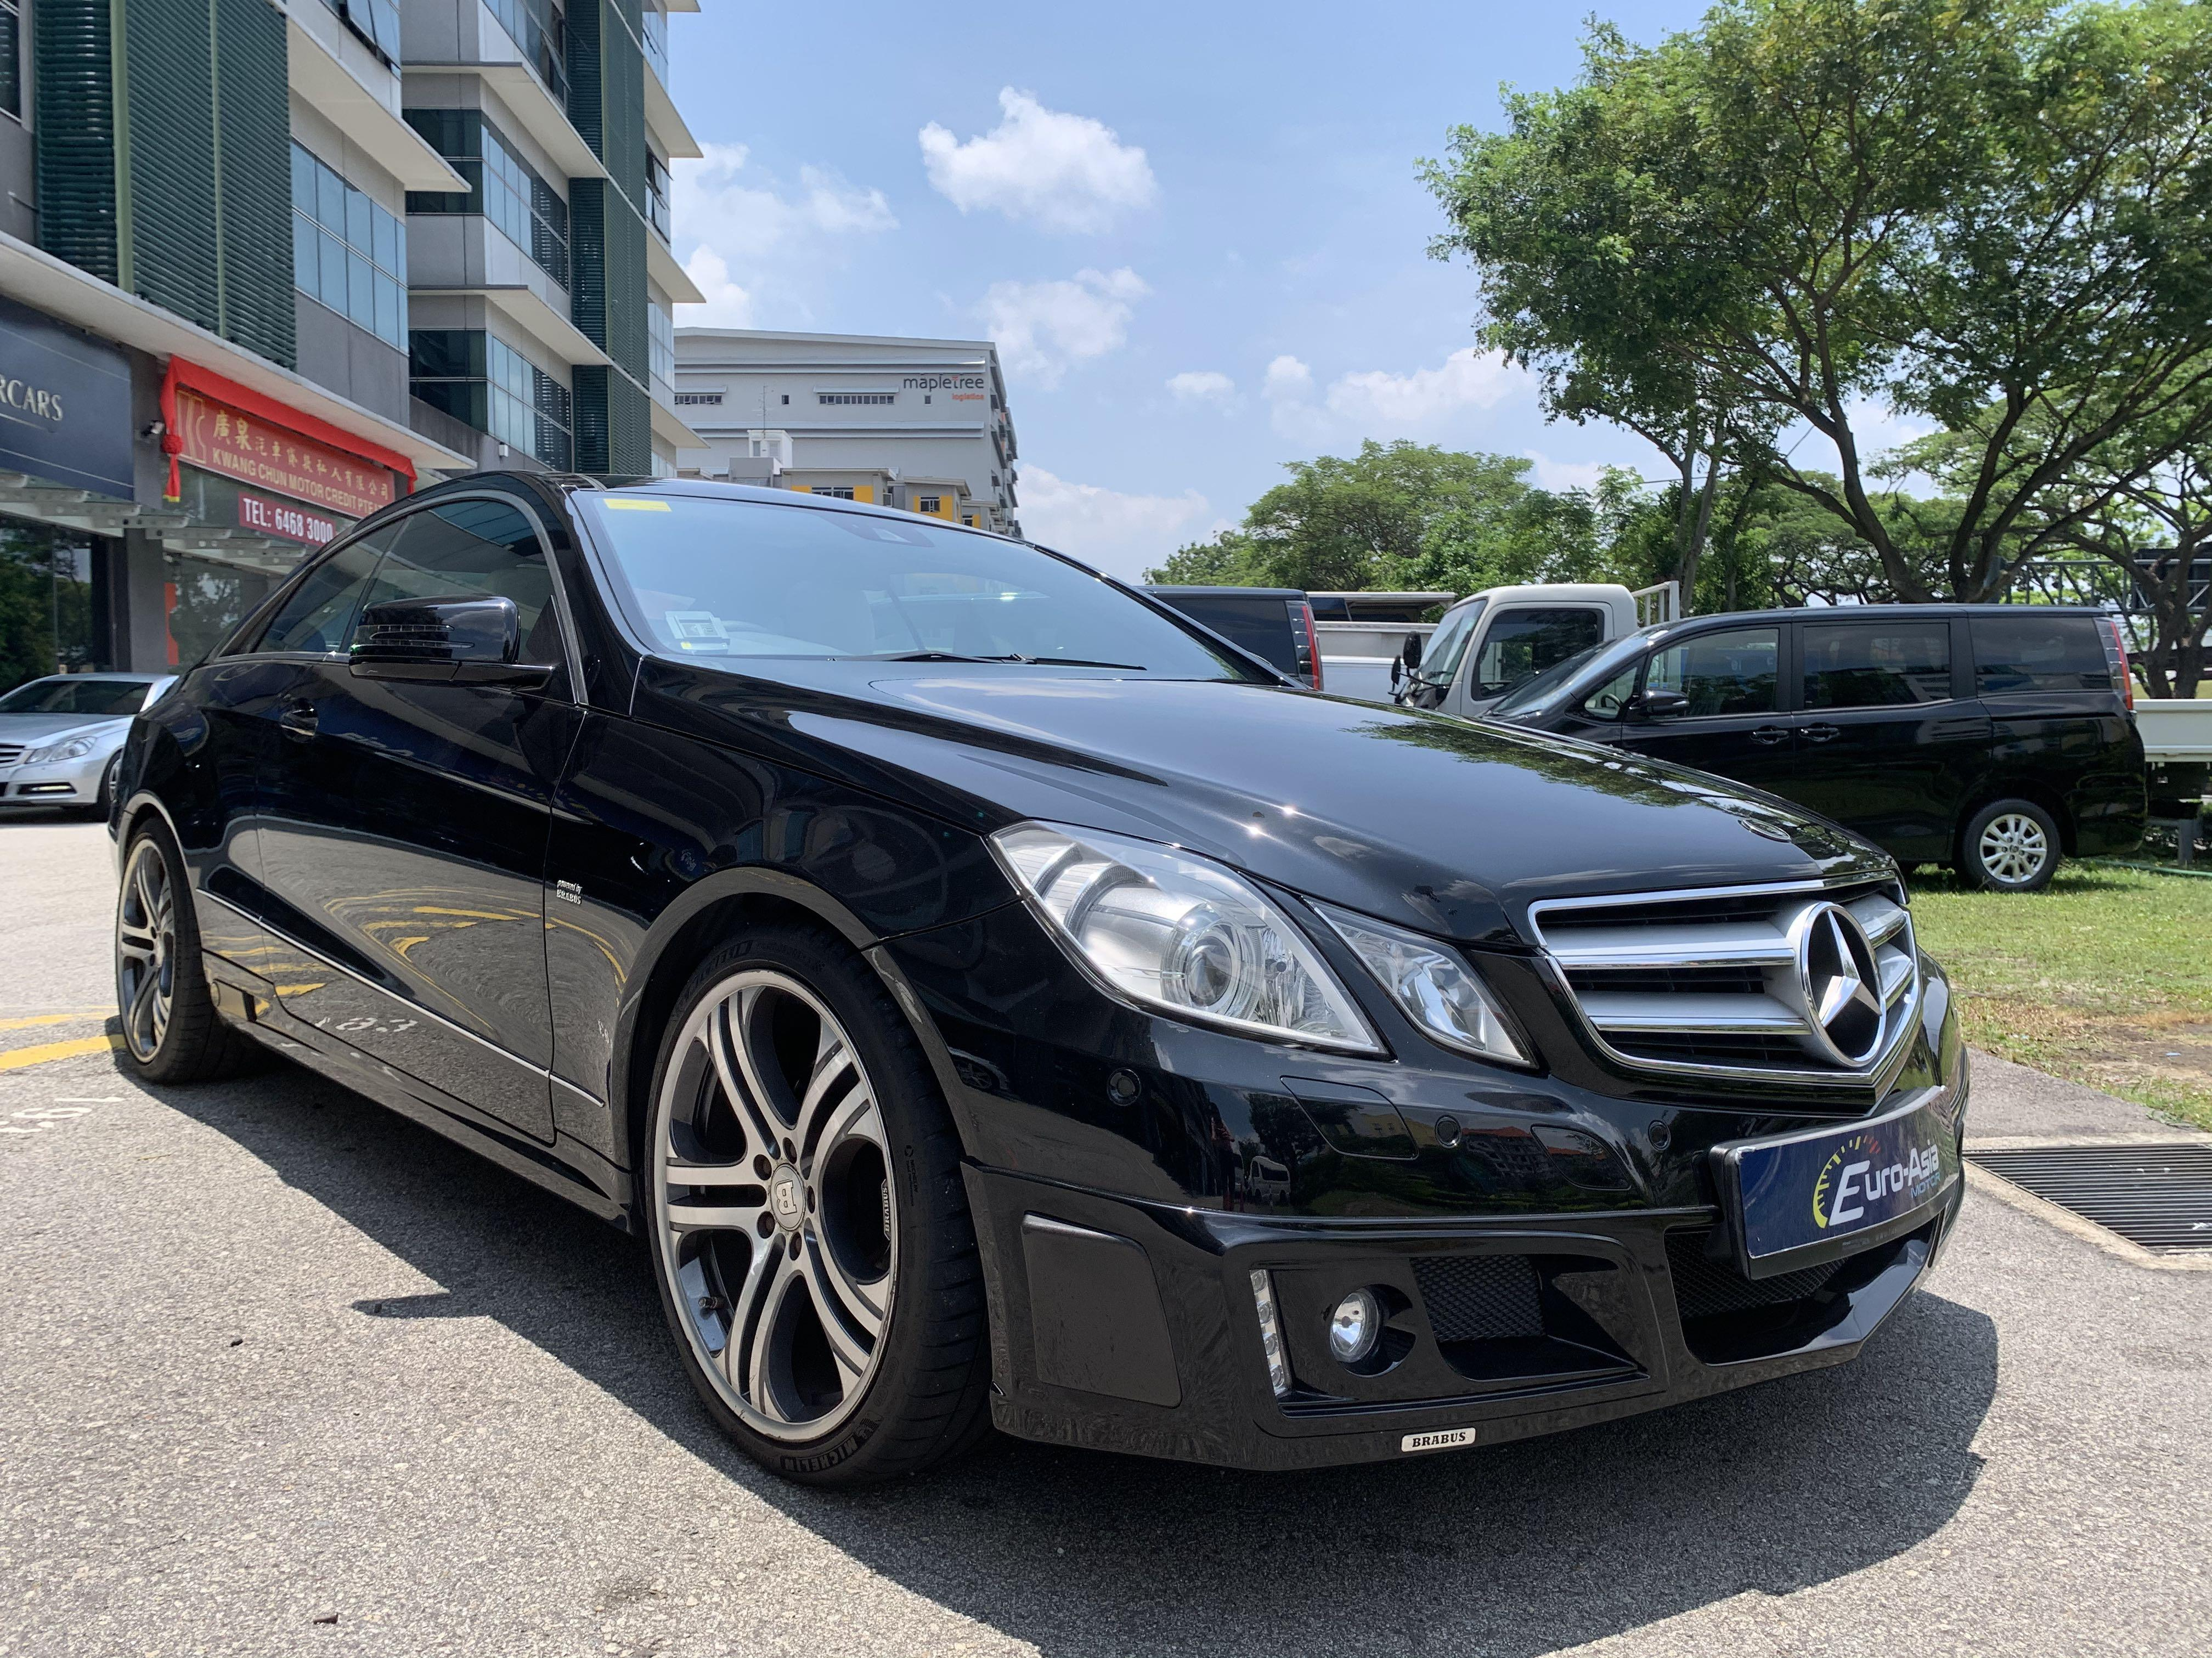 Mercedes-Benz E250 Brabus Coupe Panoramic Roof Auto